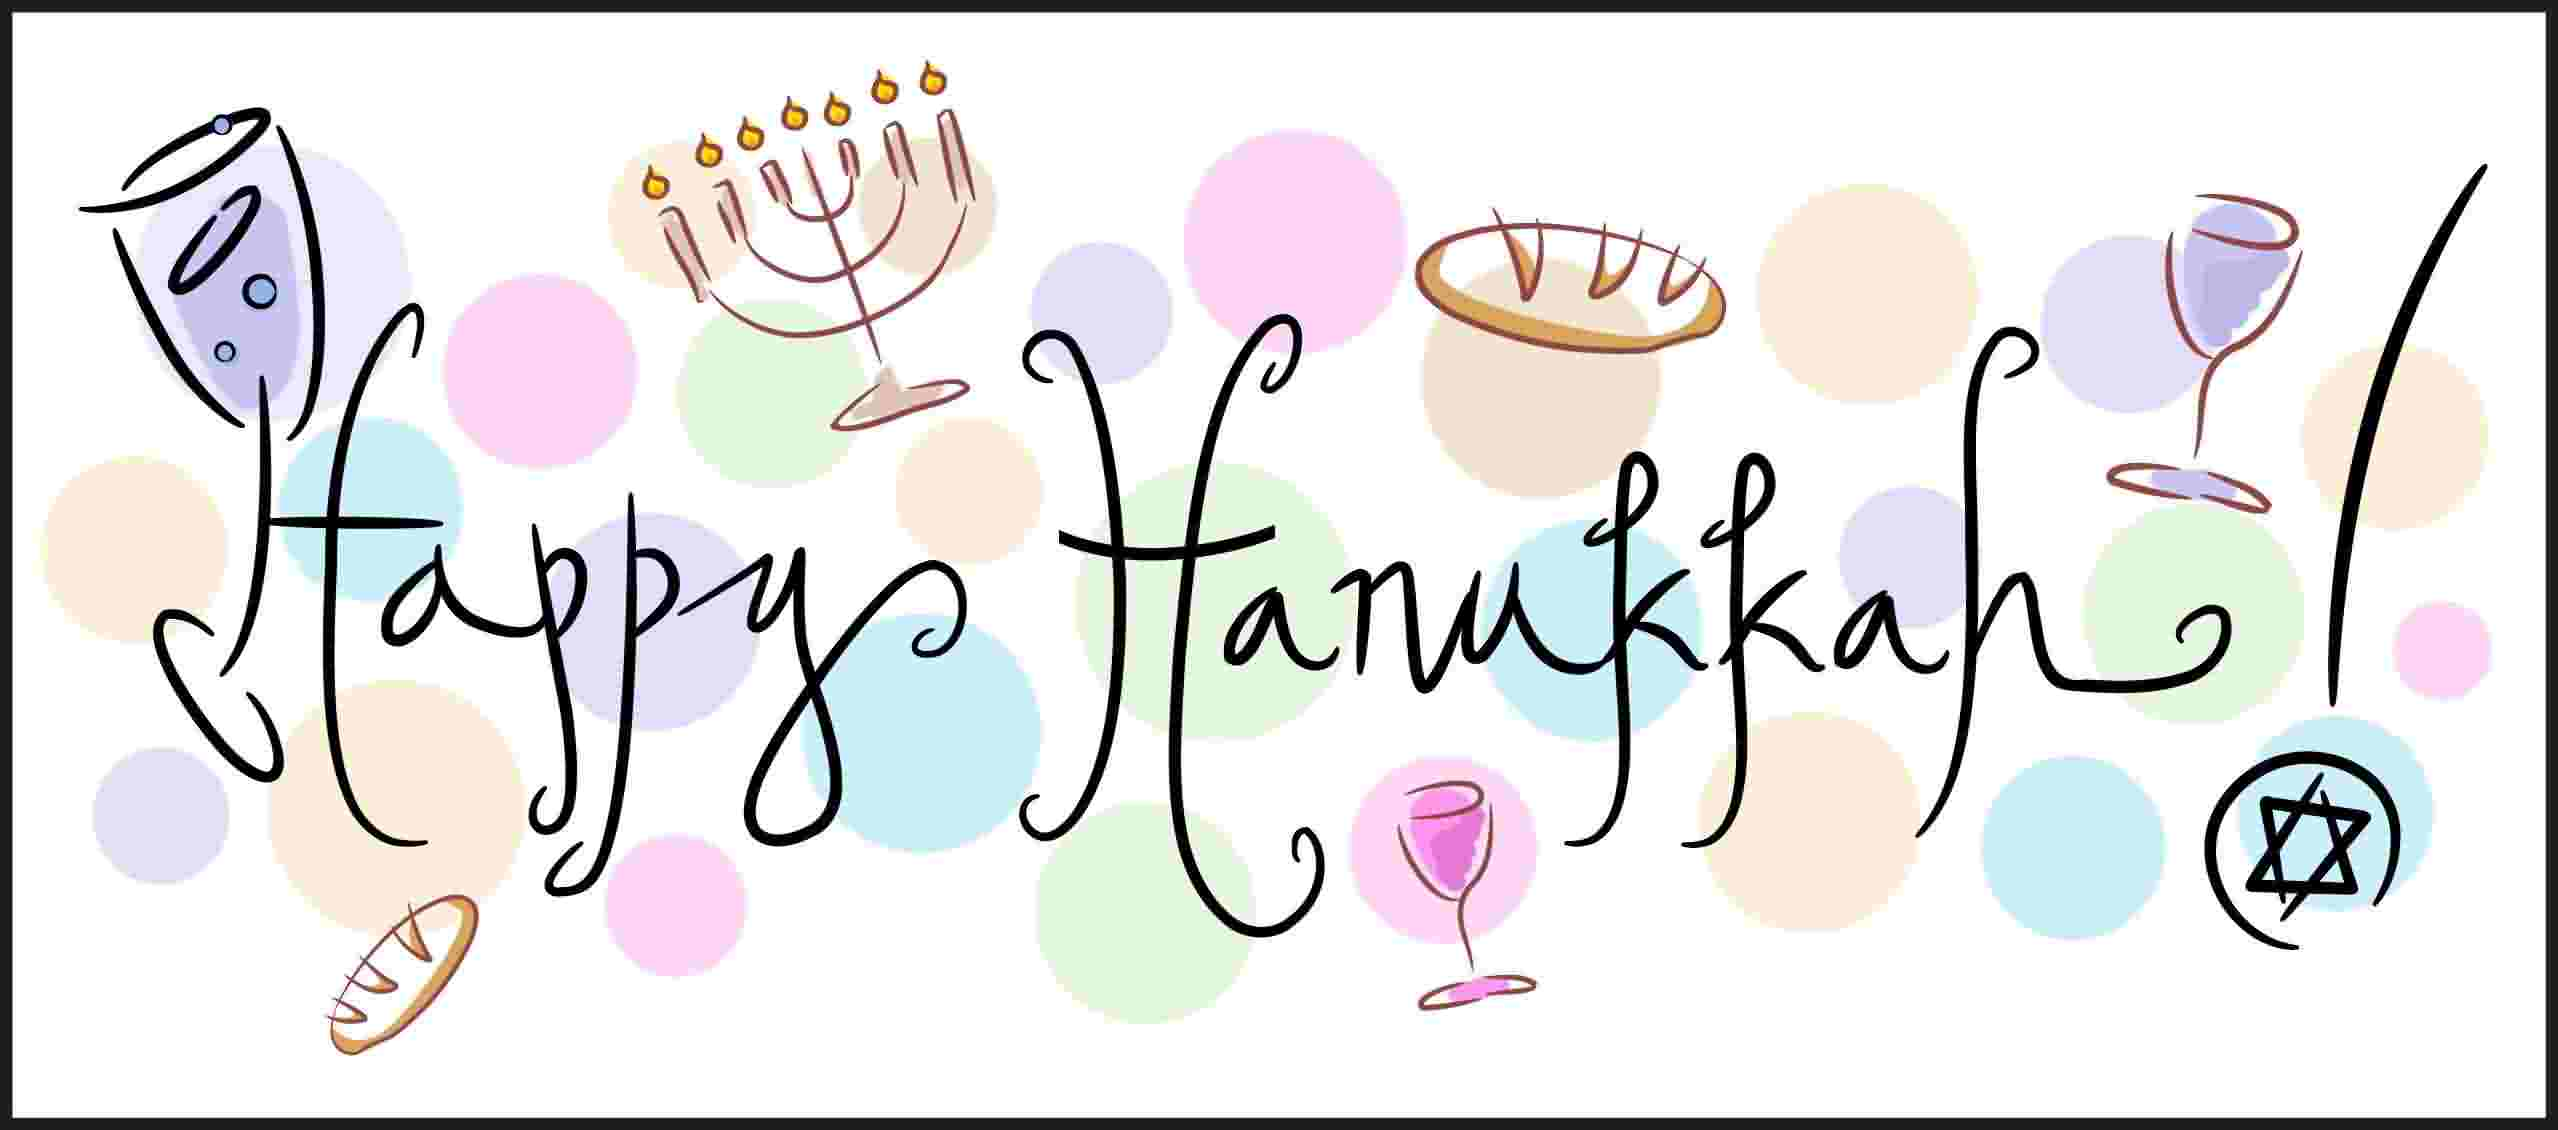 39-Happy Hanukkah Wishes